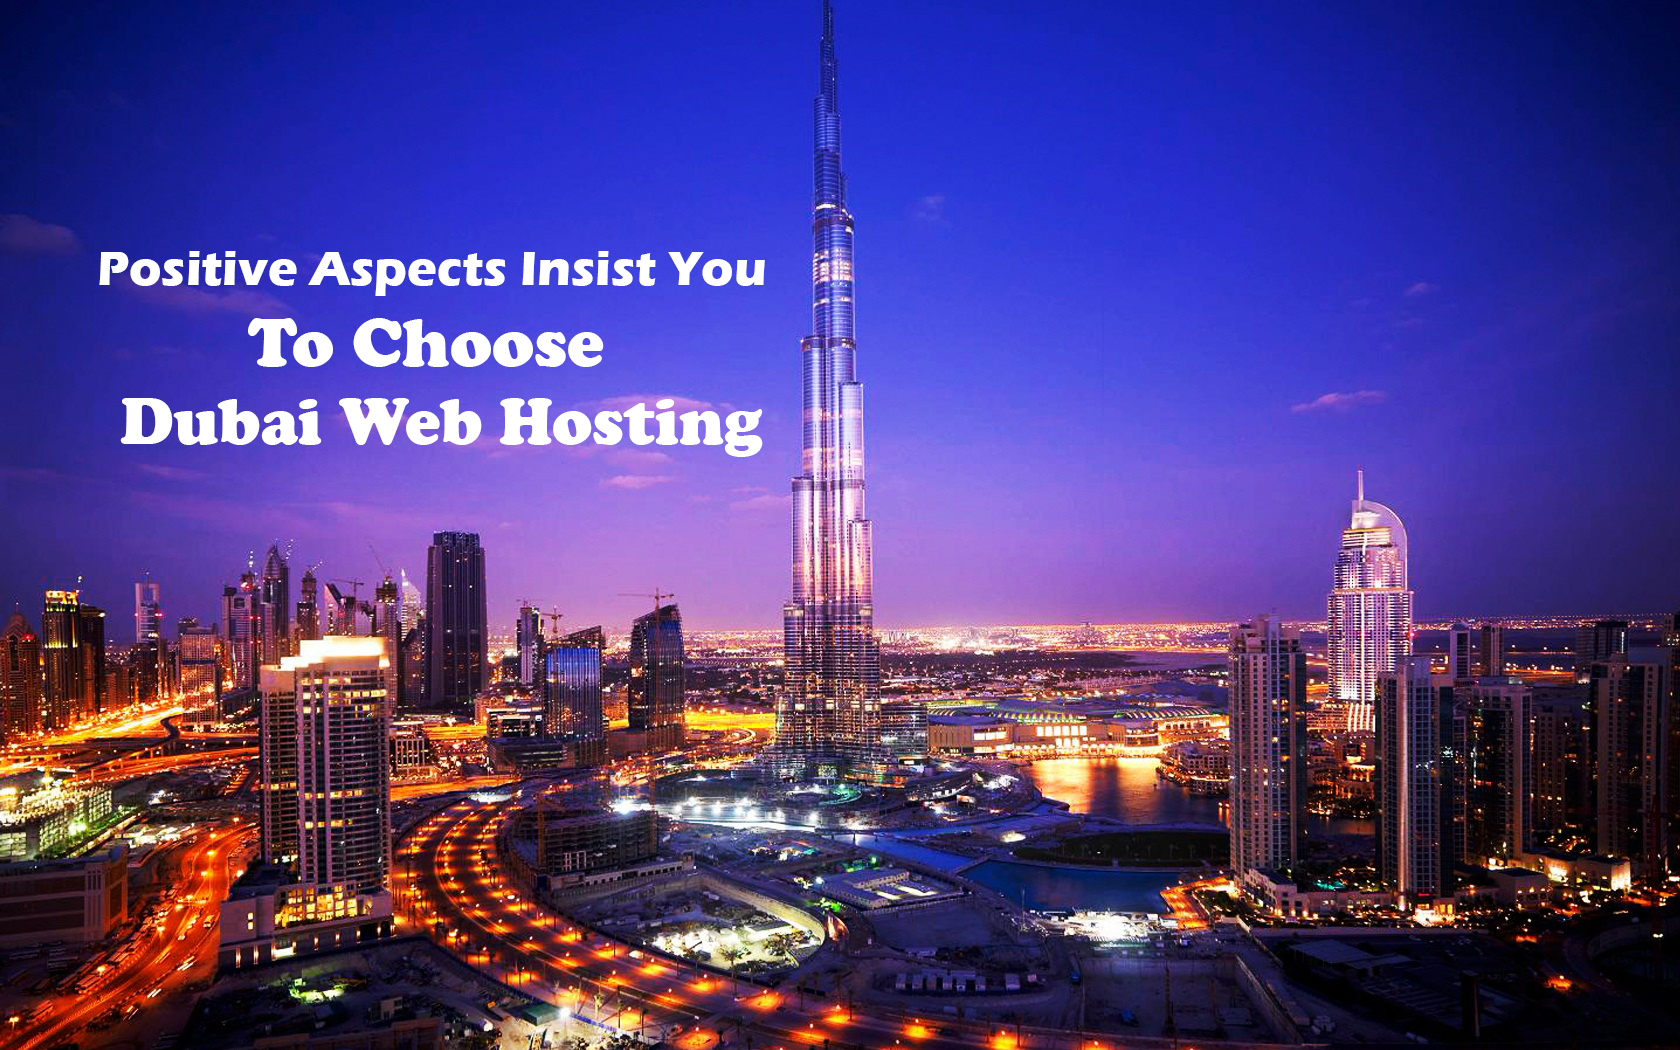 dubai web hosting